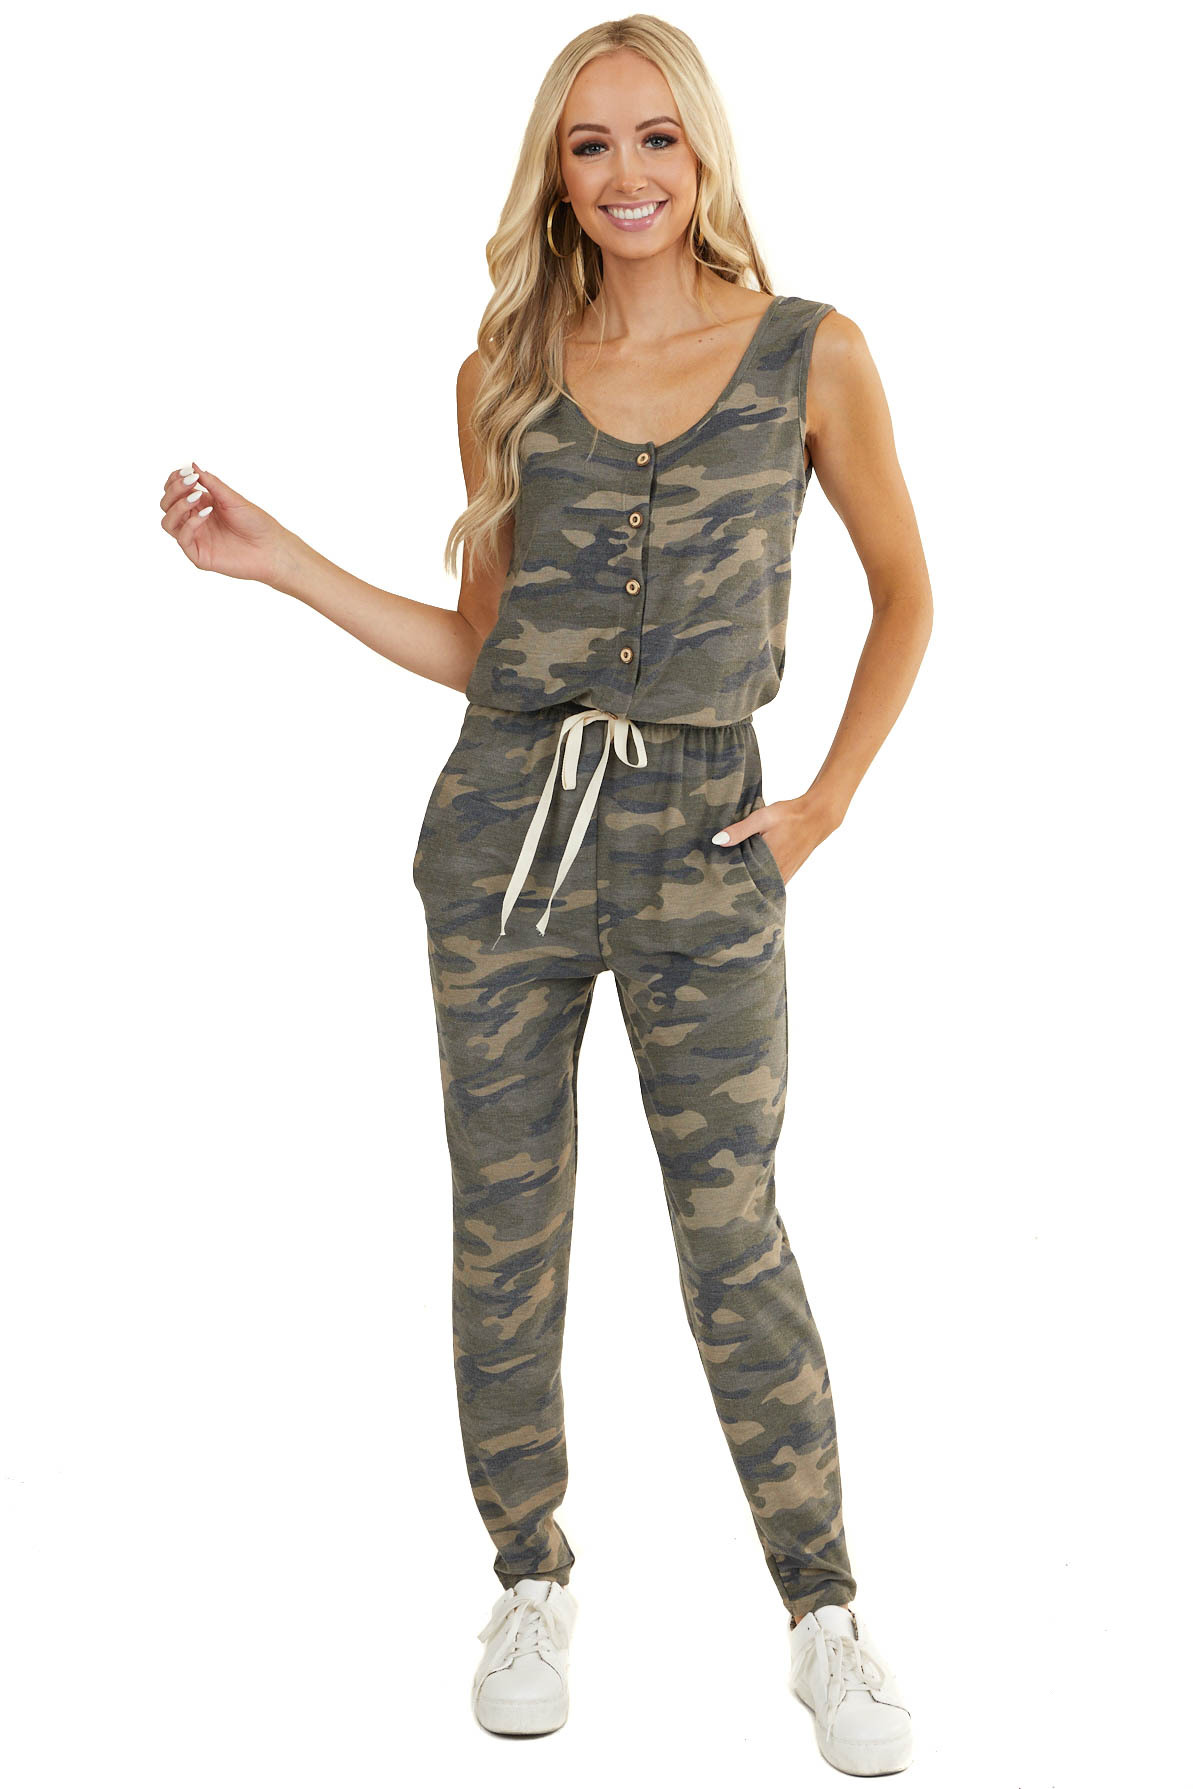 Olive Camo Sleeveless Jumpsuit with Button and Tie Details